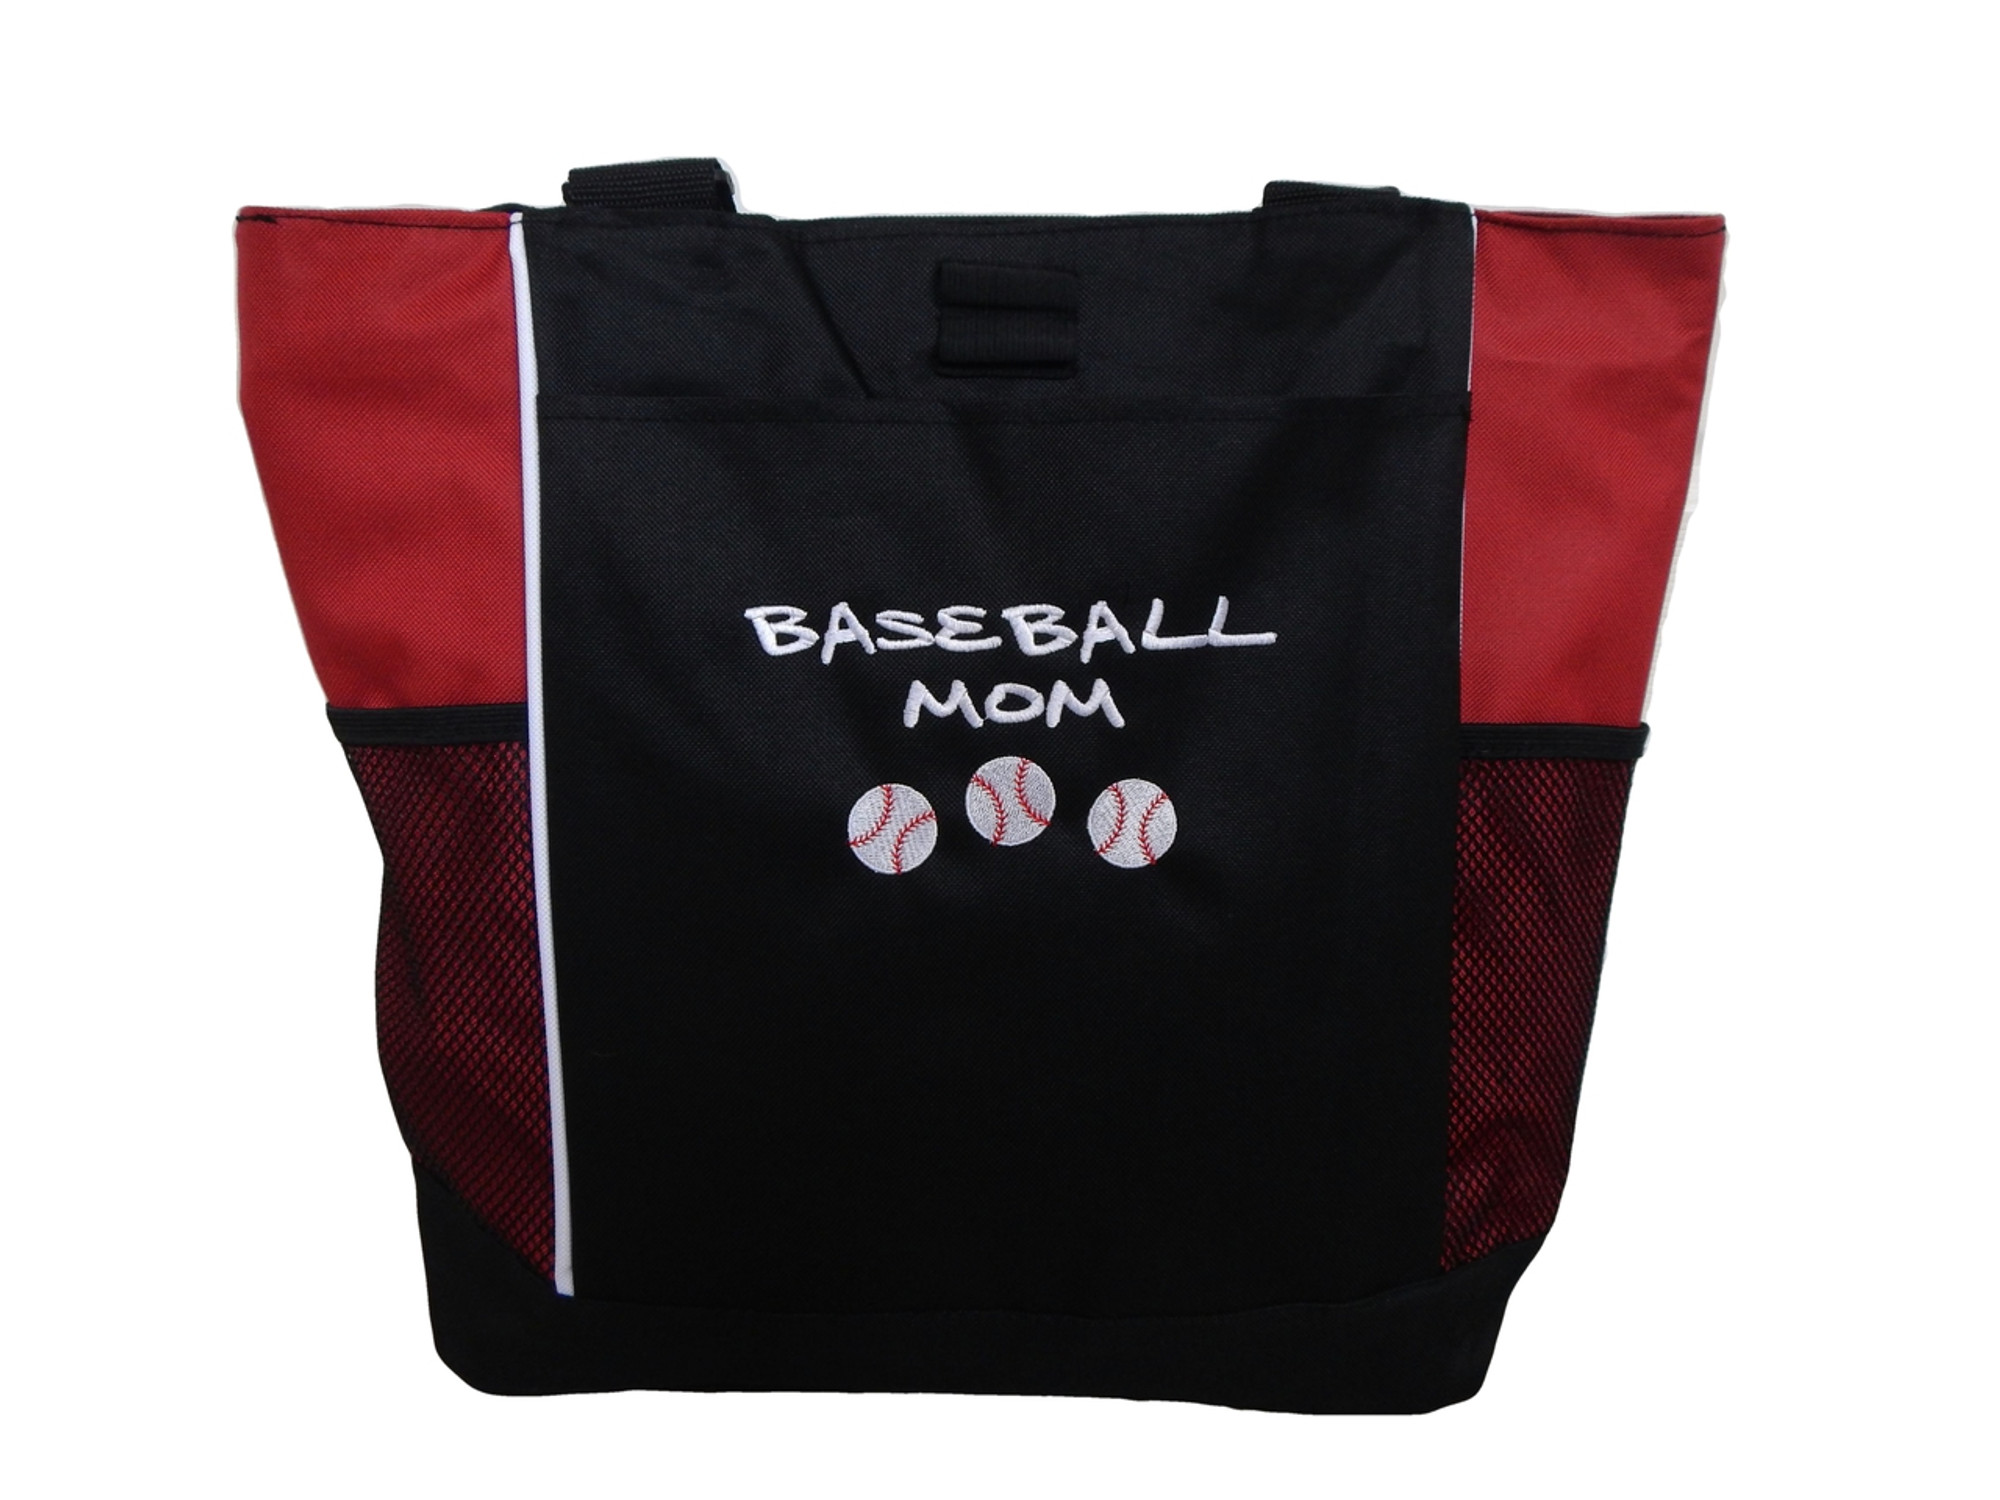 Softball Baseball 3 Balls Personalized Embroidered